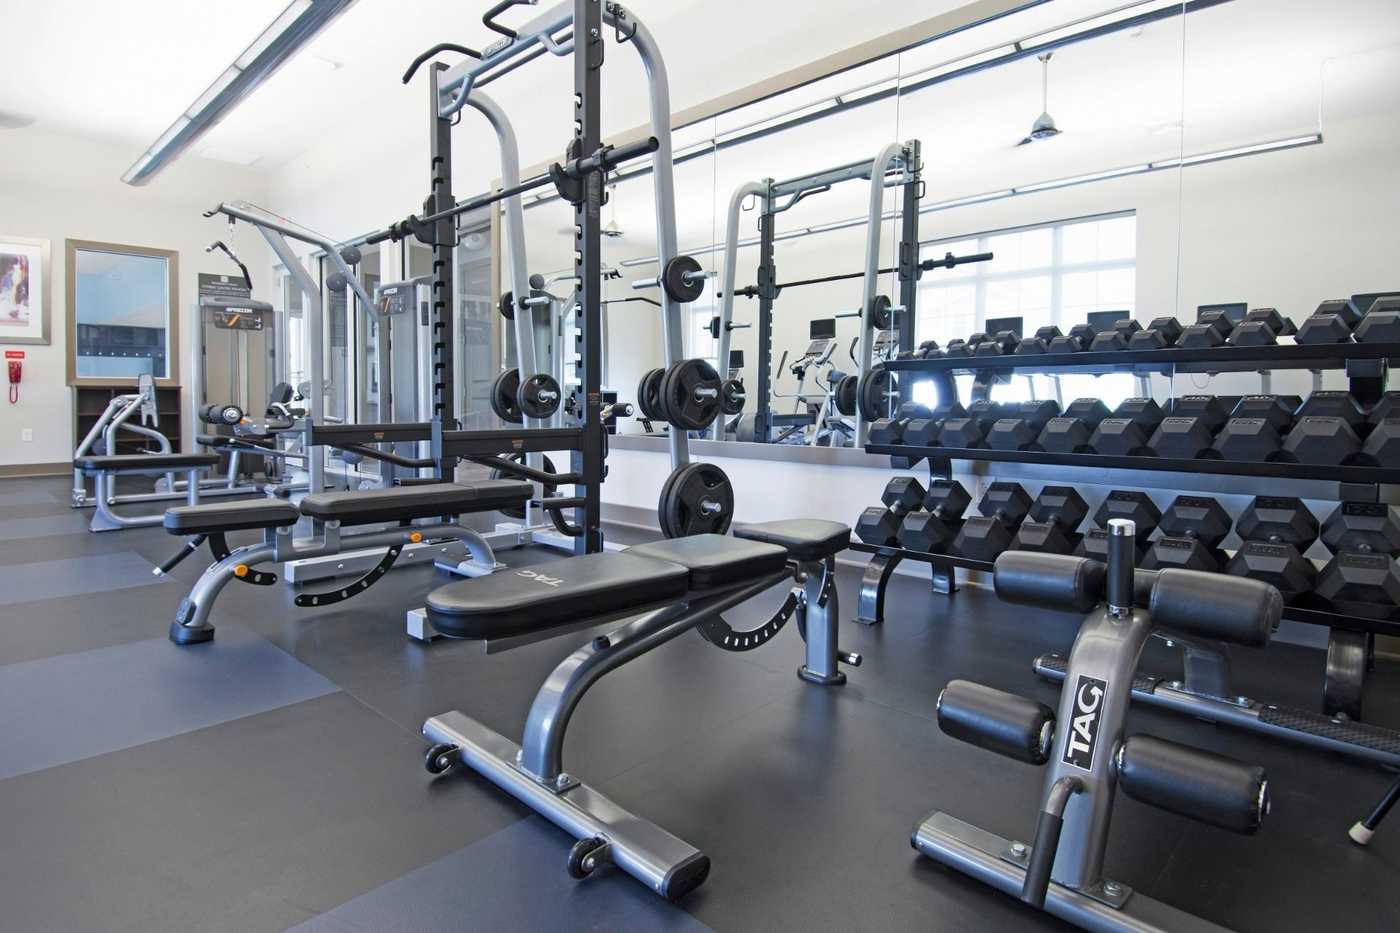 Strength training weights and equipment